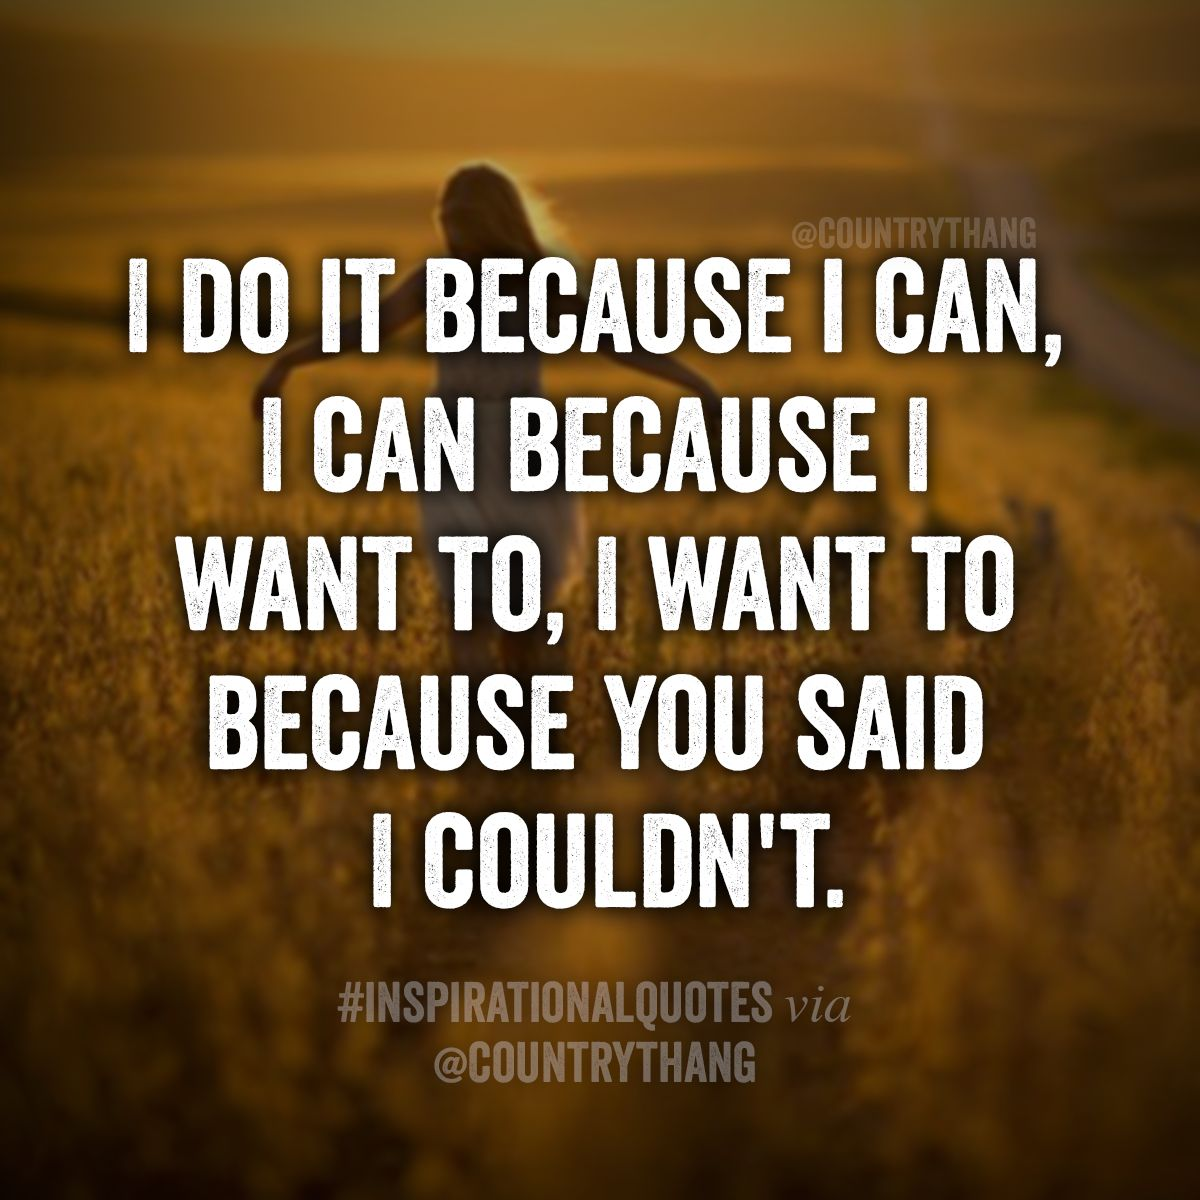 I do it because I Can, I can because I want to, I want to because you said I couldn't #positivequotes #inspirationalquotes #motivationalquotes #countrythang #countrythangquotes #countryquotes #countrysayings